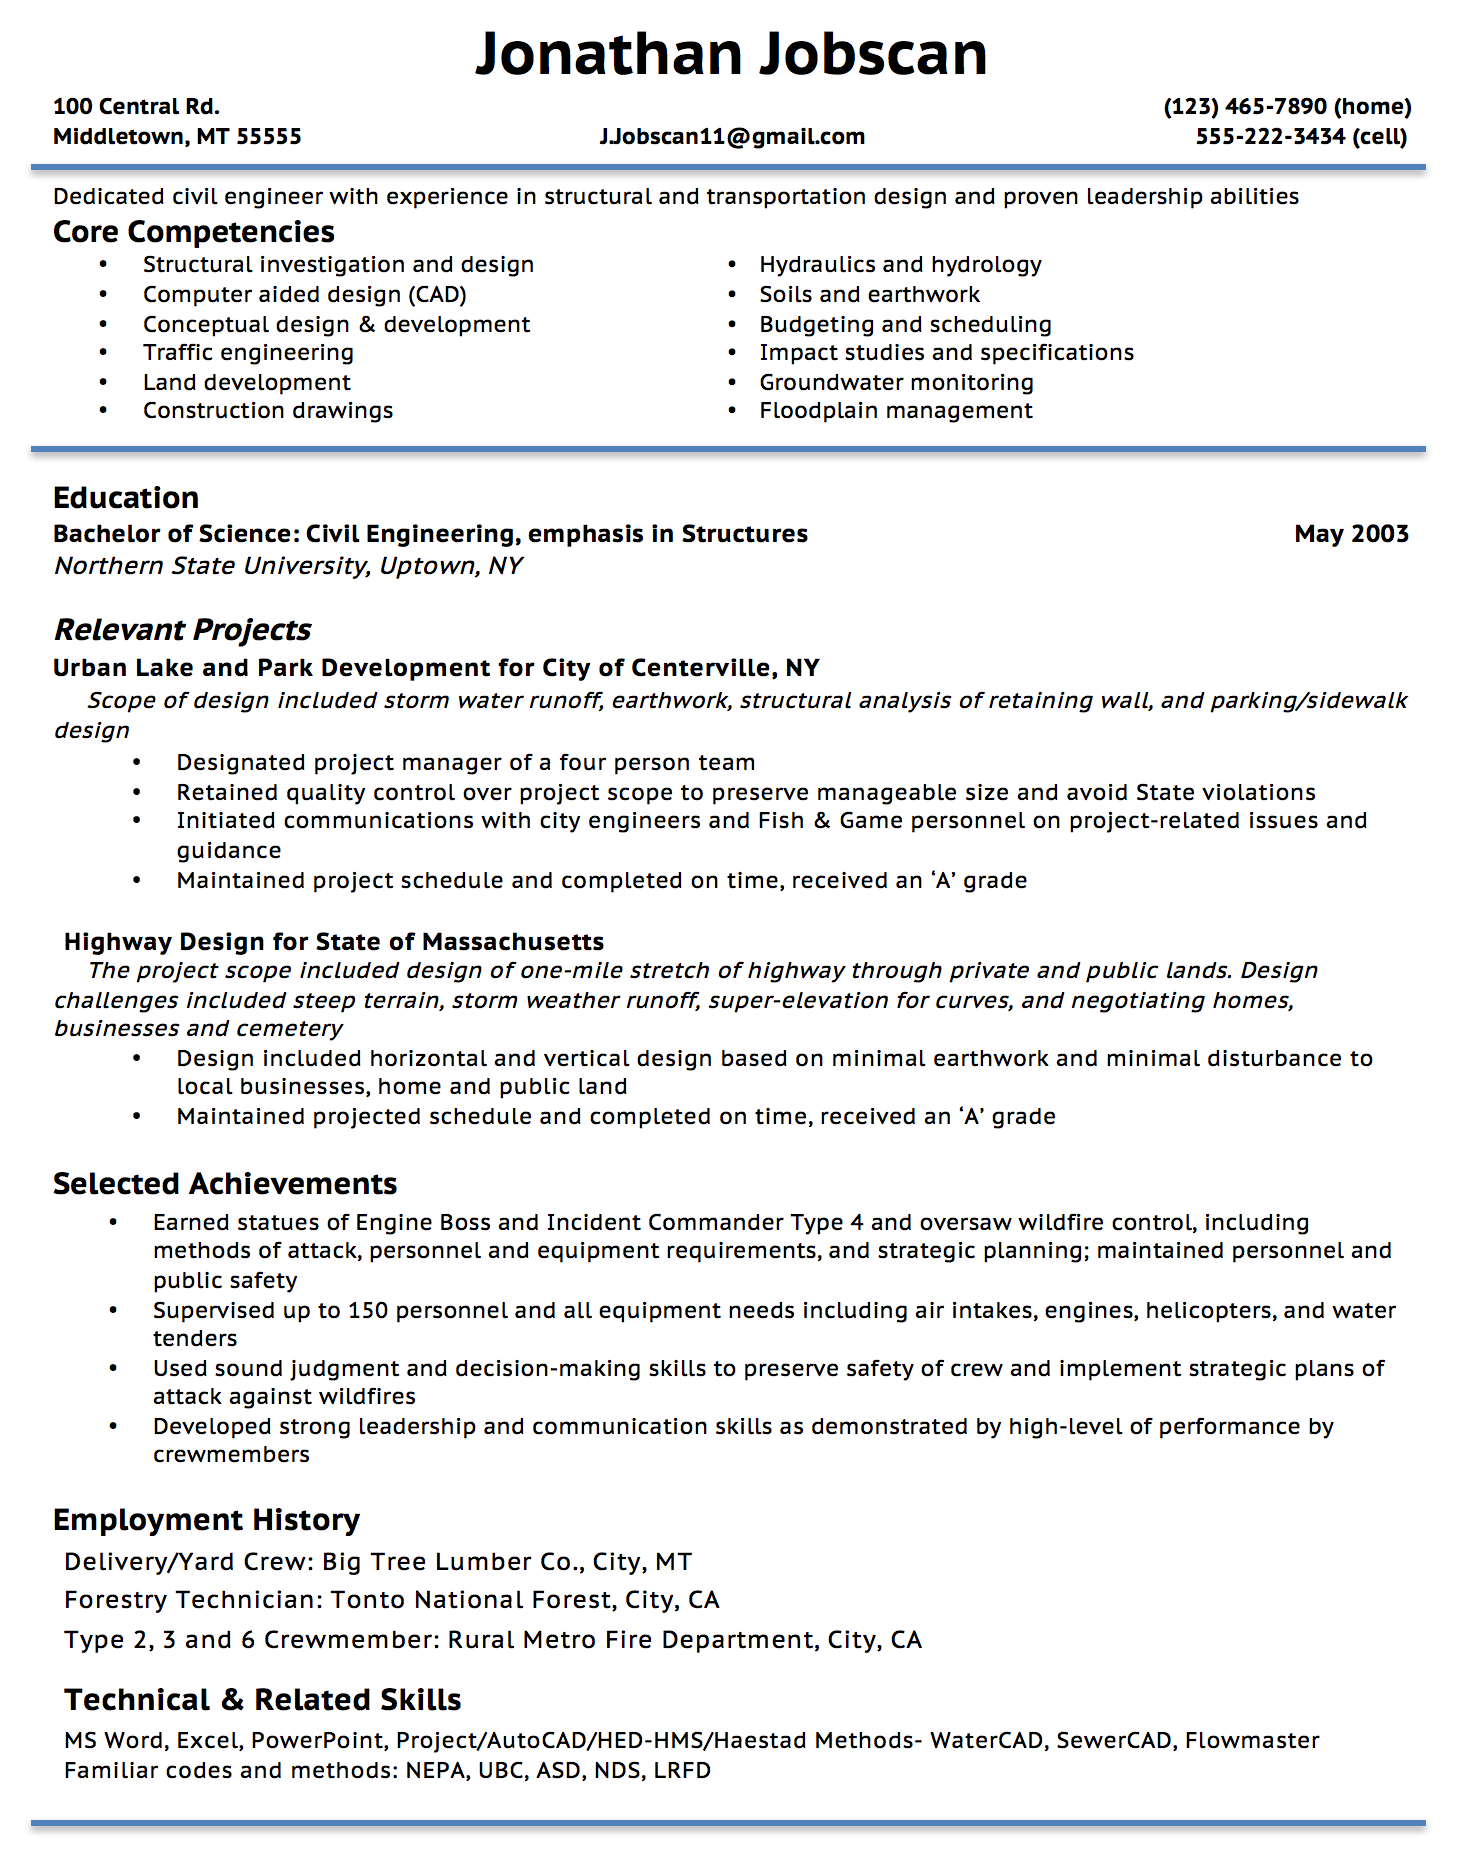 Opposenewapstandardsus  Ravishing Resume Writing Guide  Jobscan With Hot Example Of A Functional Resume Format With Beautiful Leadership Skills For Resume Also Usajobs Resume Tips In Addition Effective Resume Formats And Resume For Nanny As Well As Non Profit Resume Additionally Server Duties For Resume From Jobscanco With Opposenewapstandardsus  Hot Resume Writing Guide  Jobscan With Beautiful Example Of A Functional Resume Format And Ravishing Leadership Skills For Resume Also Usajobs Resume Tips In Addition Effective Resume Formats From Jobscanco